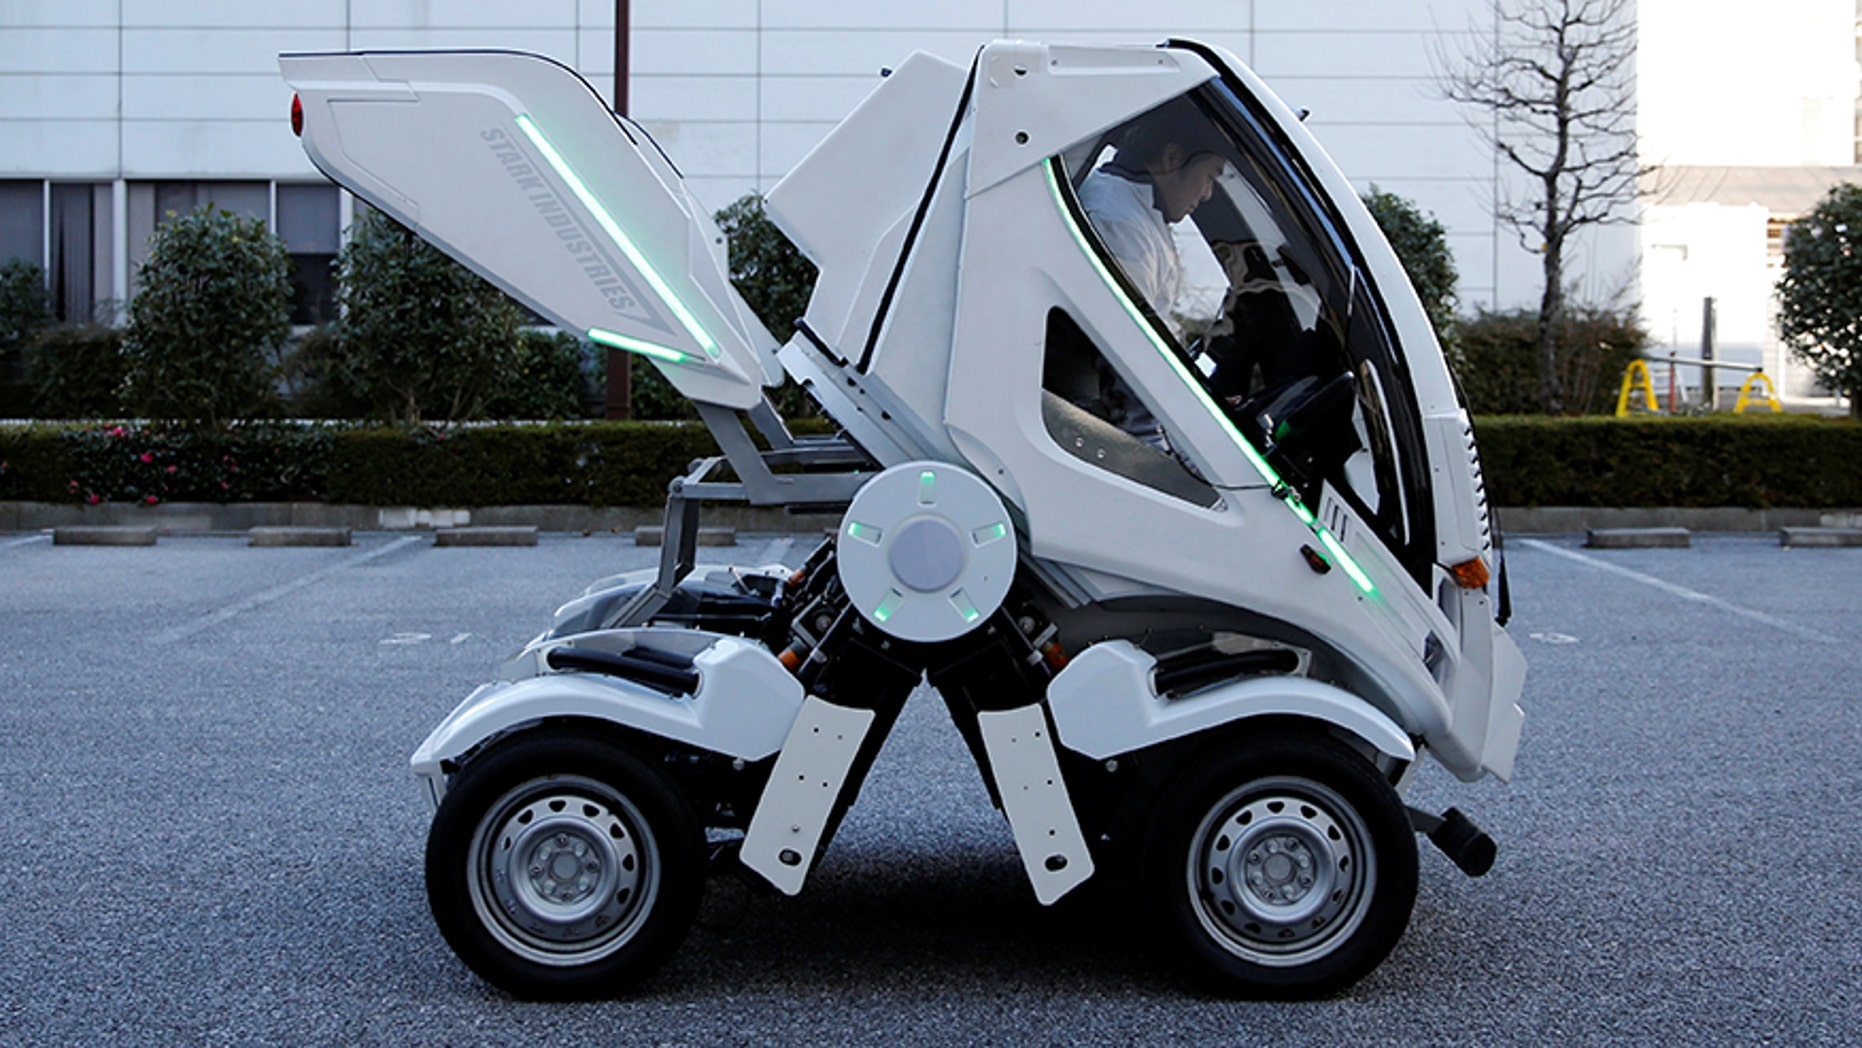 """Four Link Systems, Inc's fully electric foldable vehicle 'Earth-1' which was designed by Kunio Okawara, famous in Japan as the artist behind the long-running wildly popular robot anime """"Gundam"""", changes its form in Tokyo, Japan December 27, 2017. Picture taken December 27, 2017. REUTERS/Toru Hanai - RC149EA13170"""